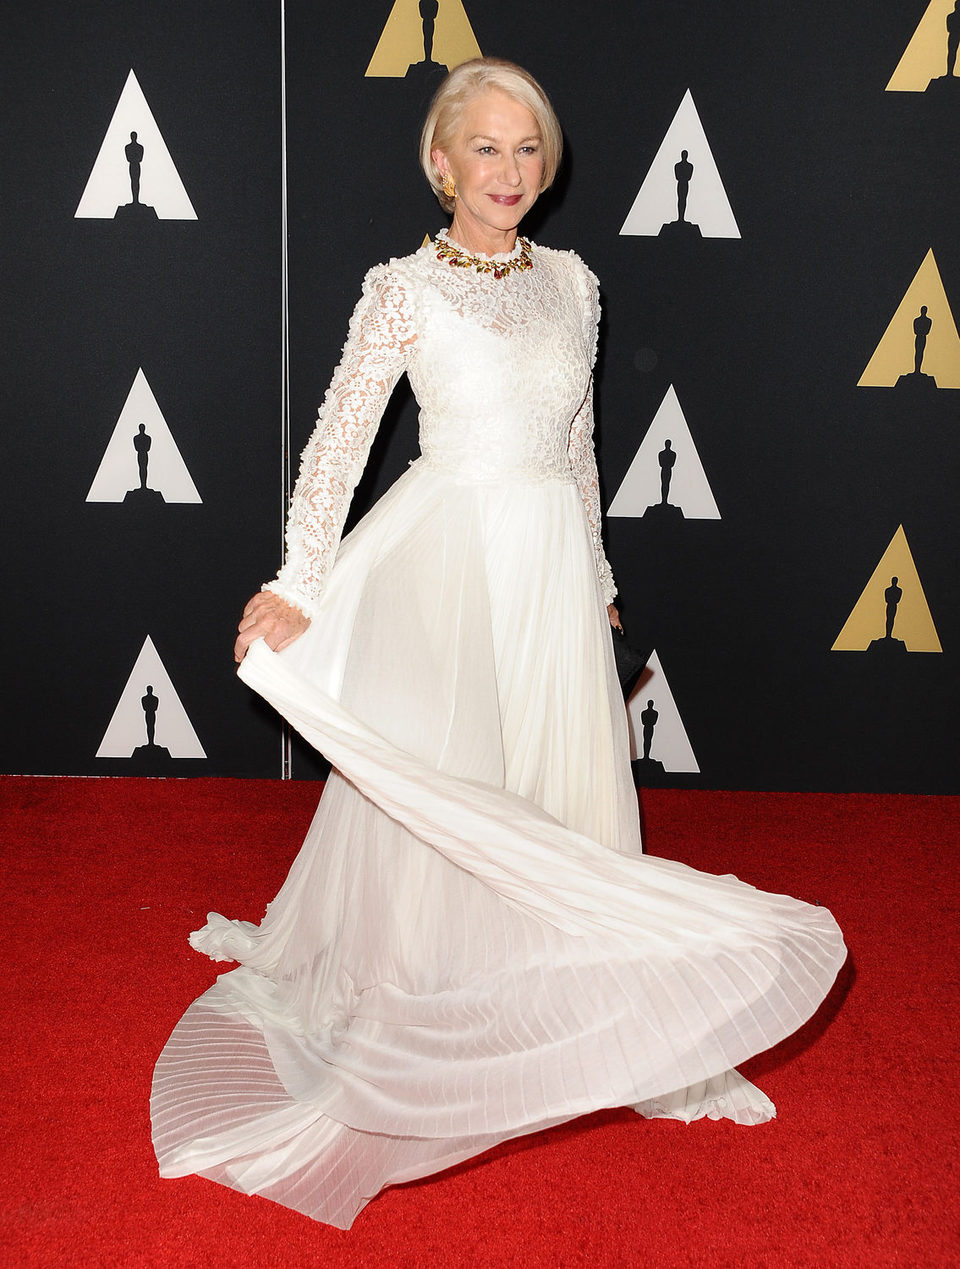 Helen Mirren en los Governor's Awards 2015